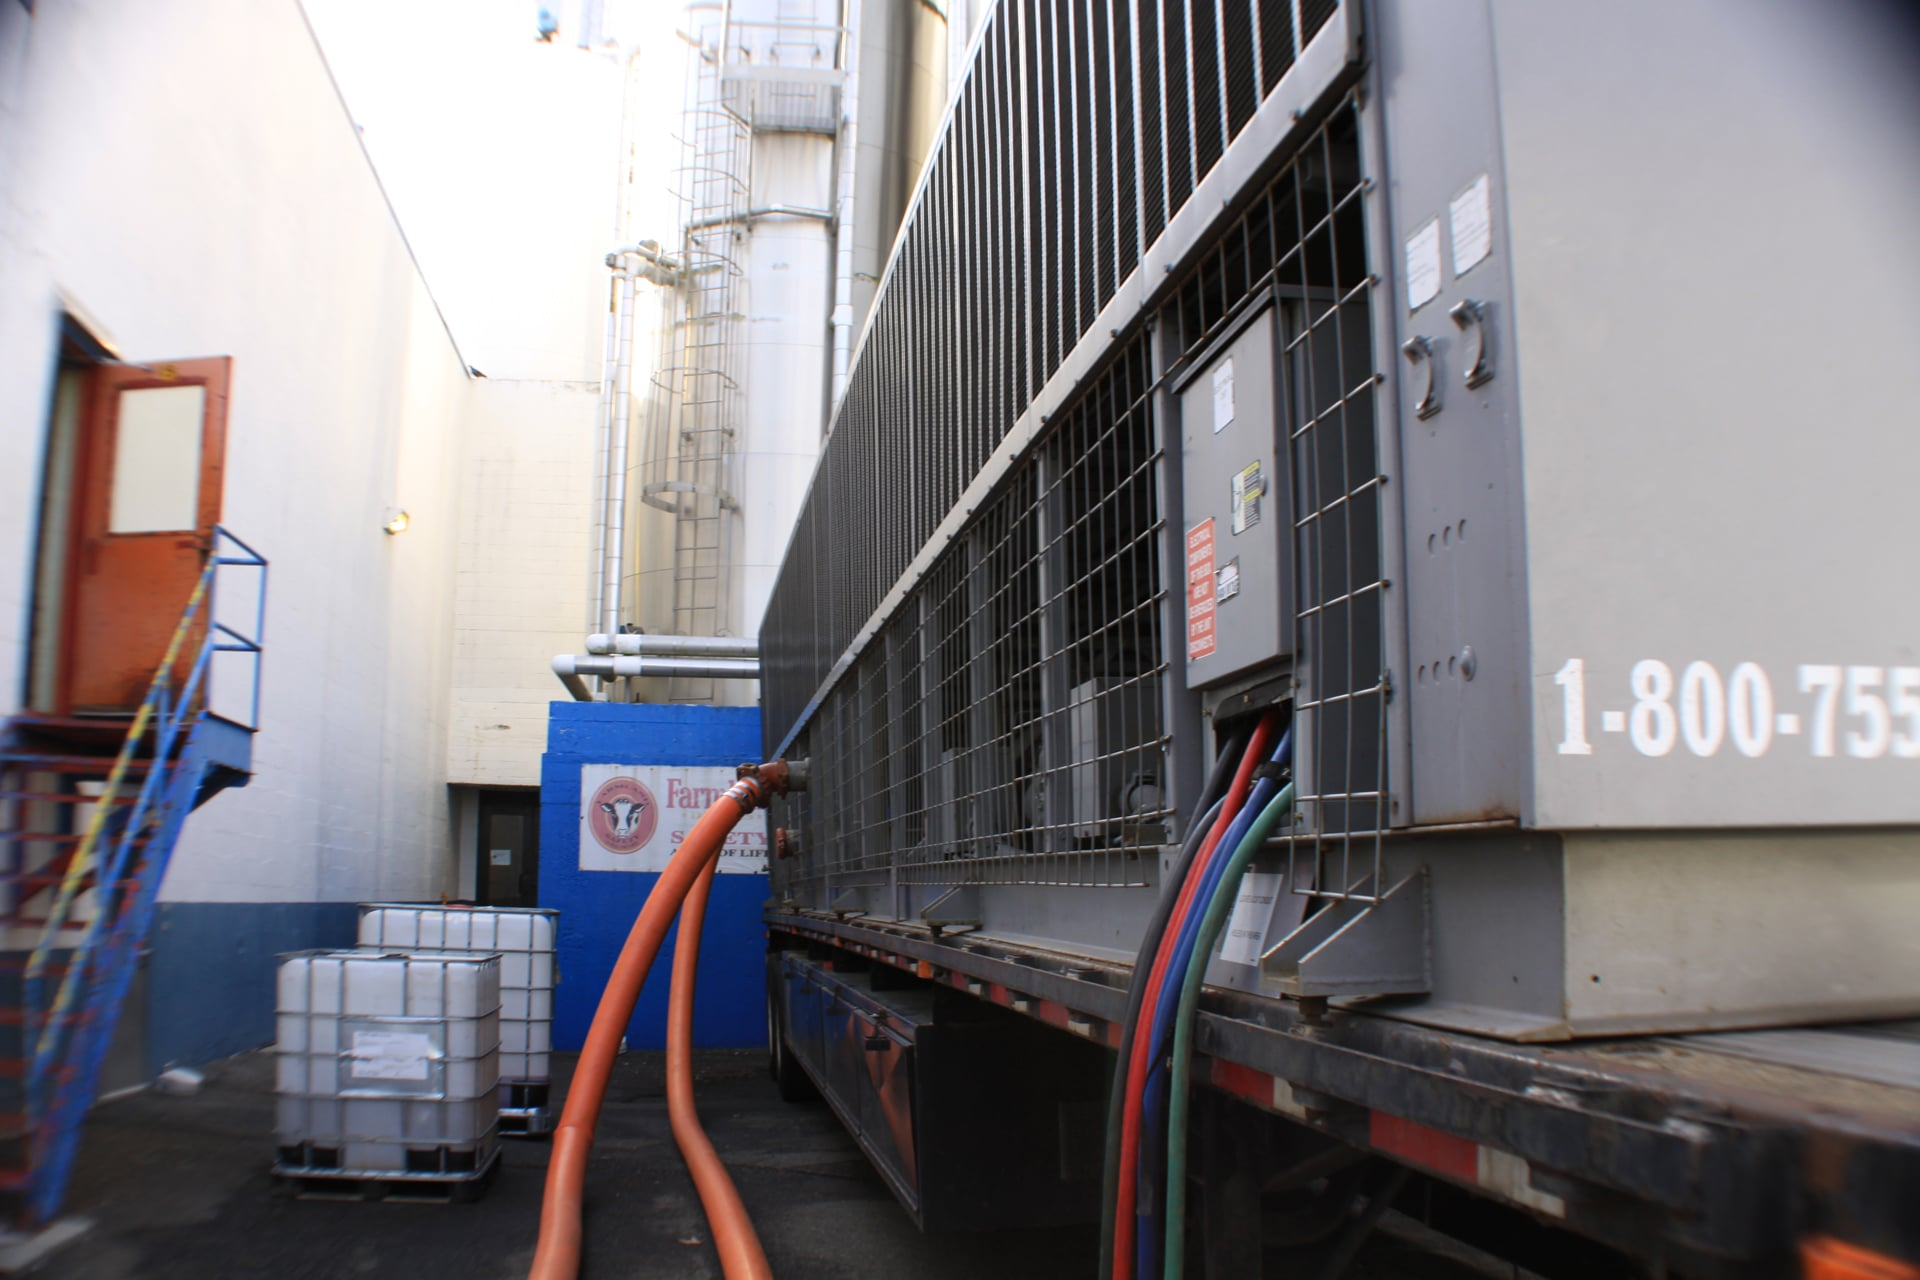 Temporary Chiller Sullivan County NH, Air Cooled Chiller Rental Sullivan County NH